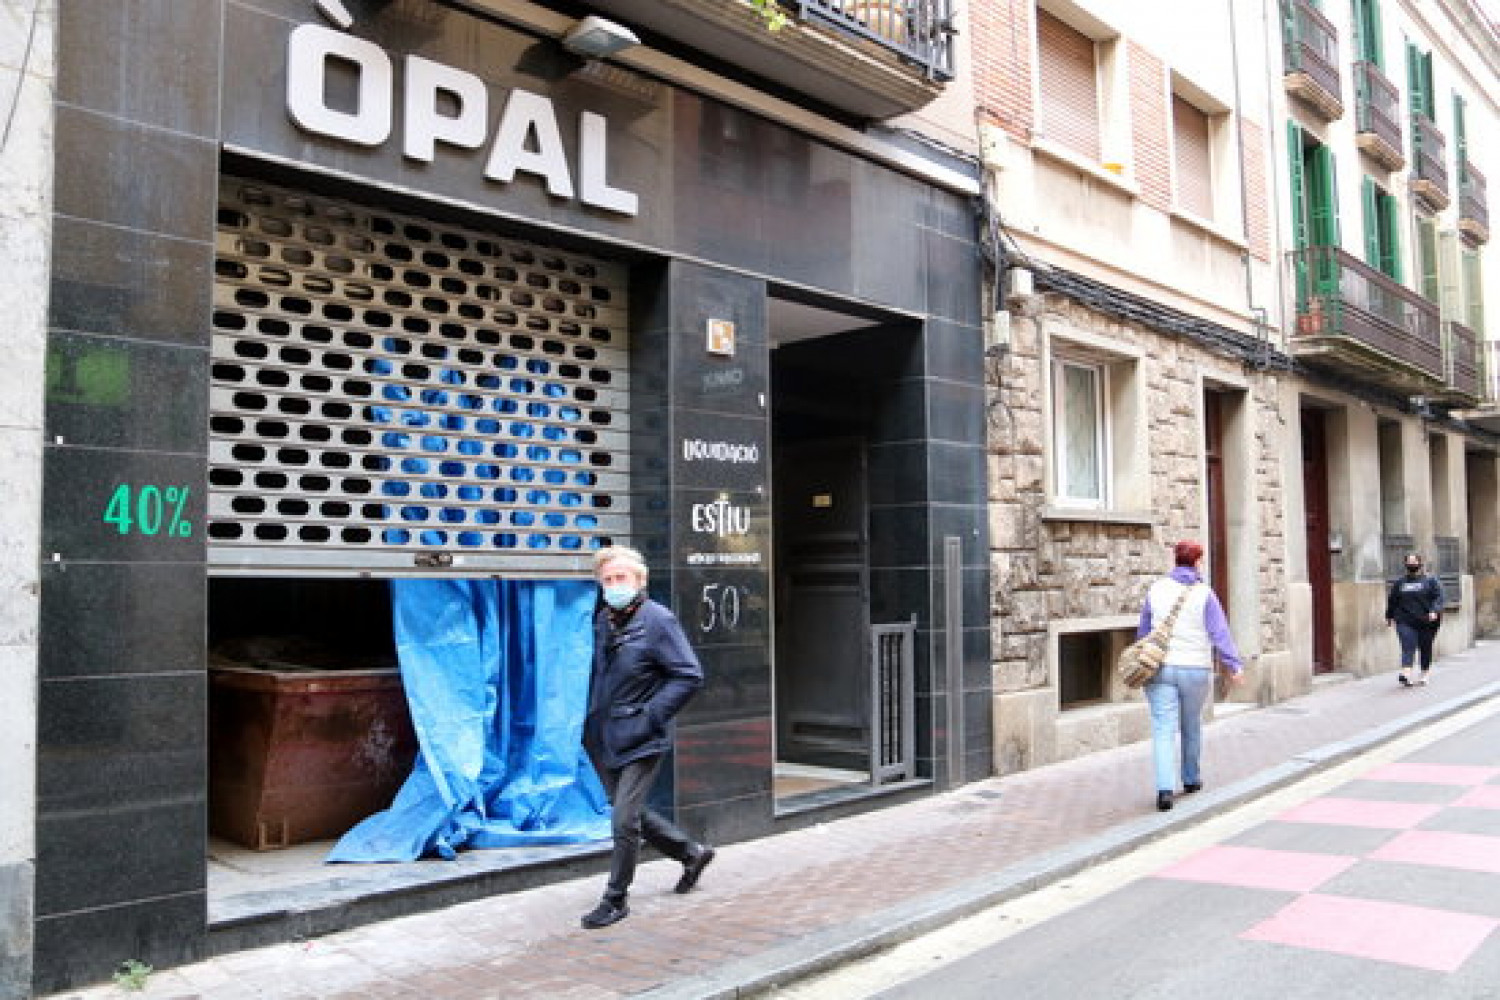 A closed down shop in the center of the town of Igualada in Catalonia, October 23, 2020 (by Mar Martí)